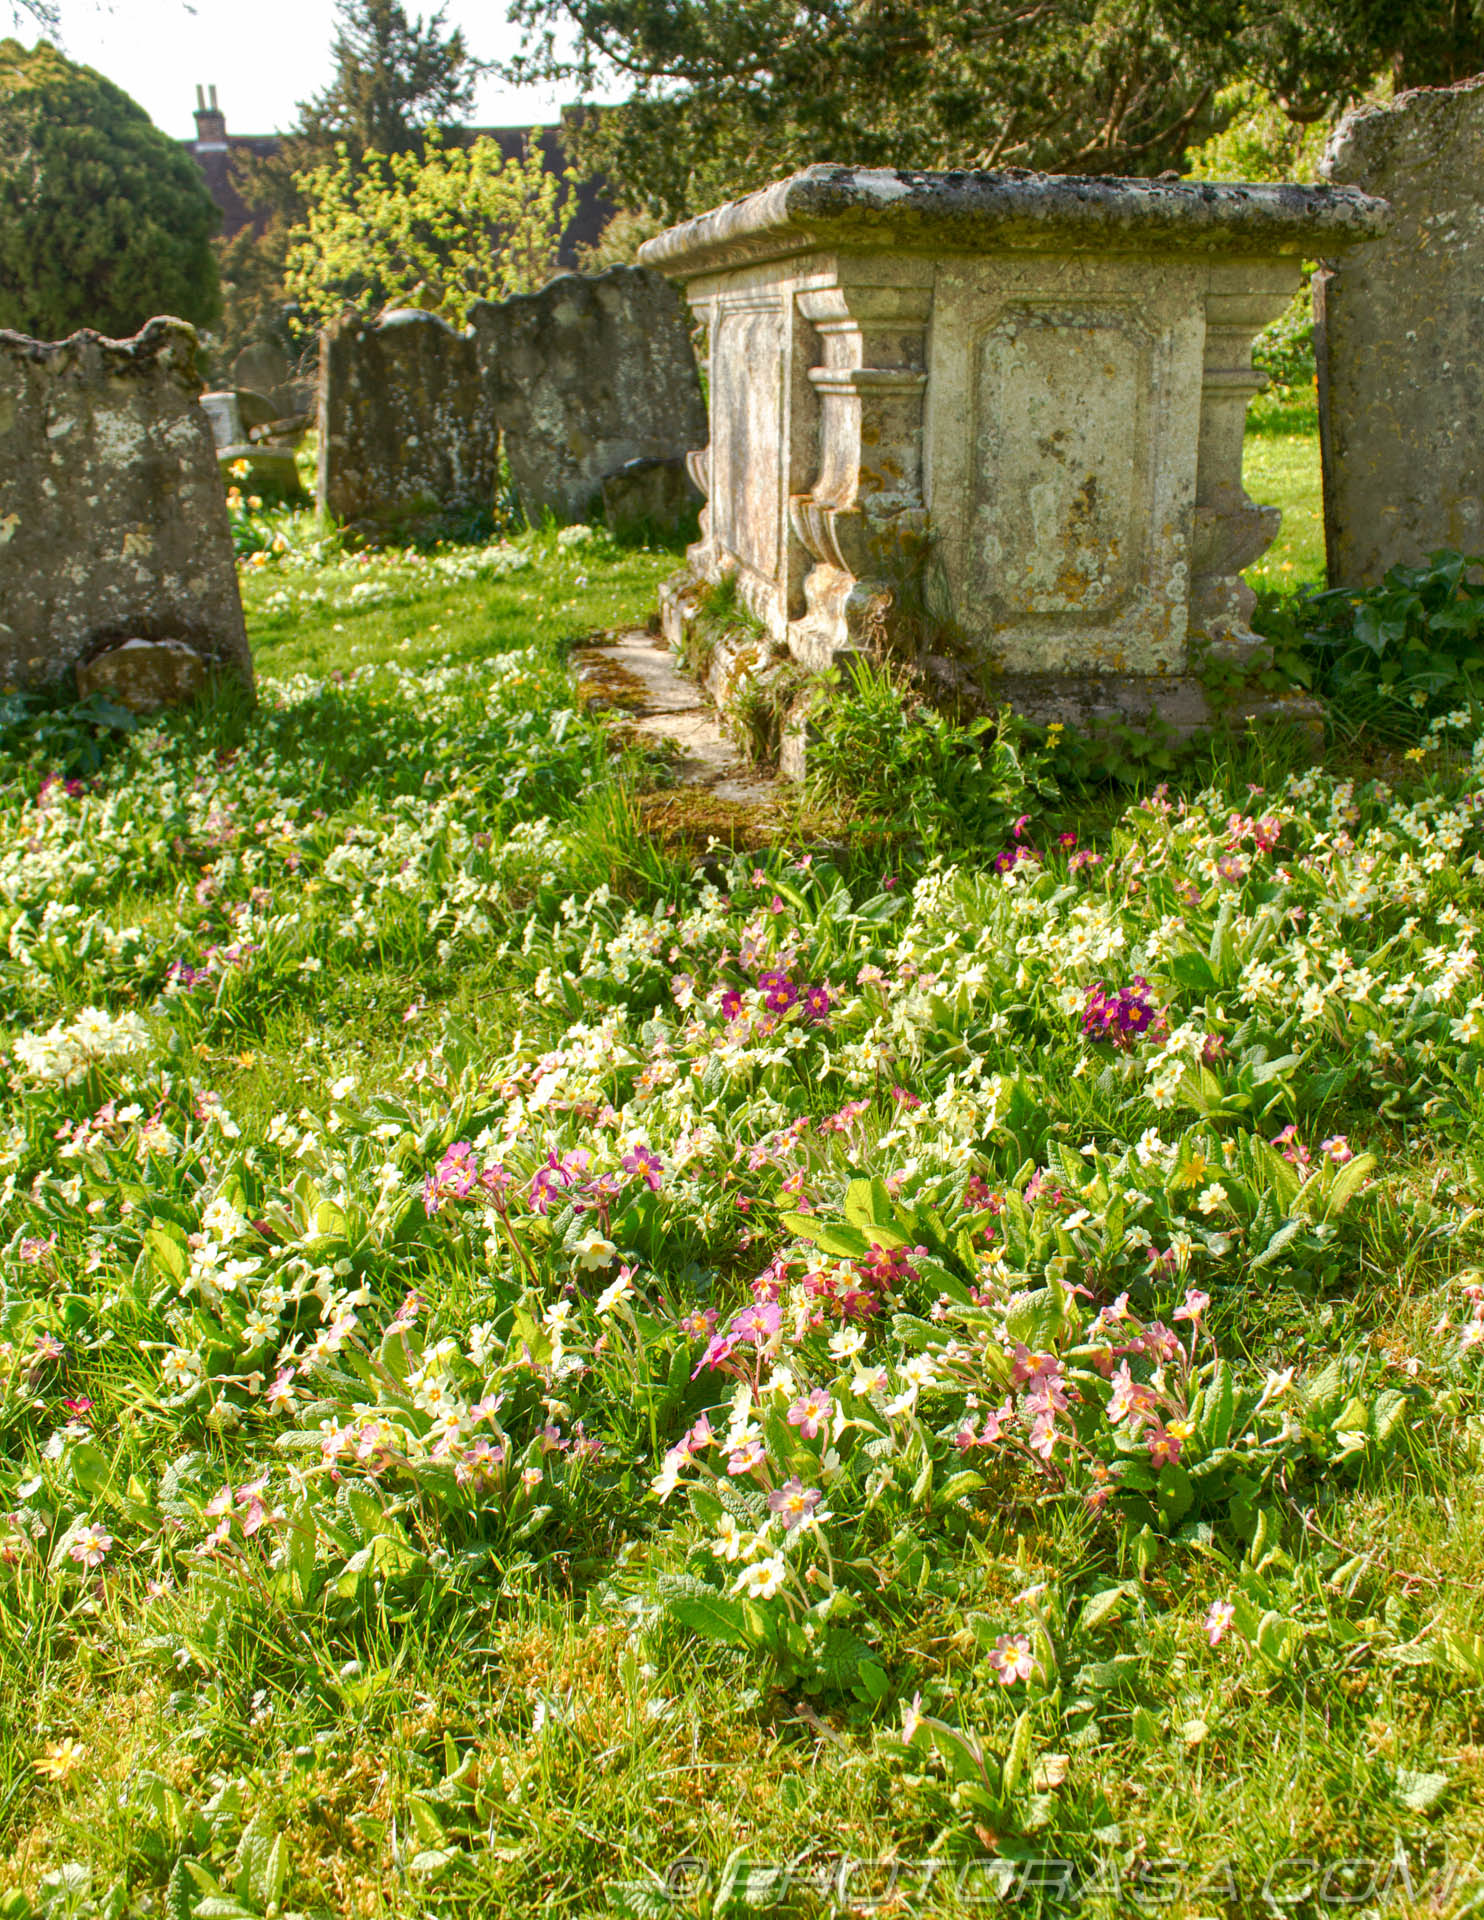 http://photorasa.com/saints-church-staplehurst-kent/wild-primroses-and-polyanthus-near-large-grave/